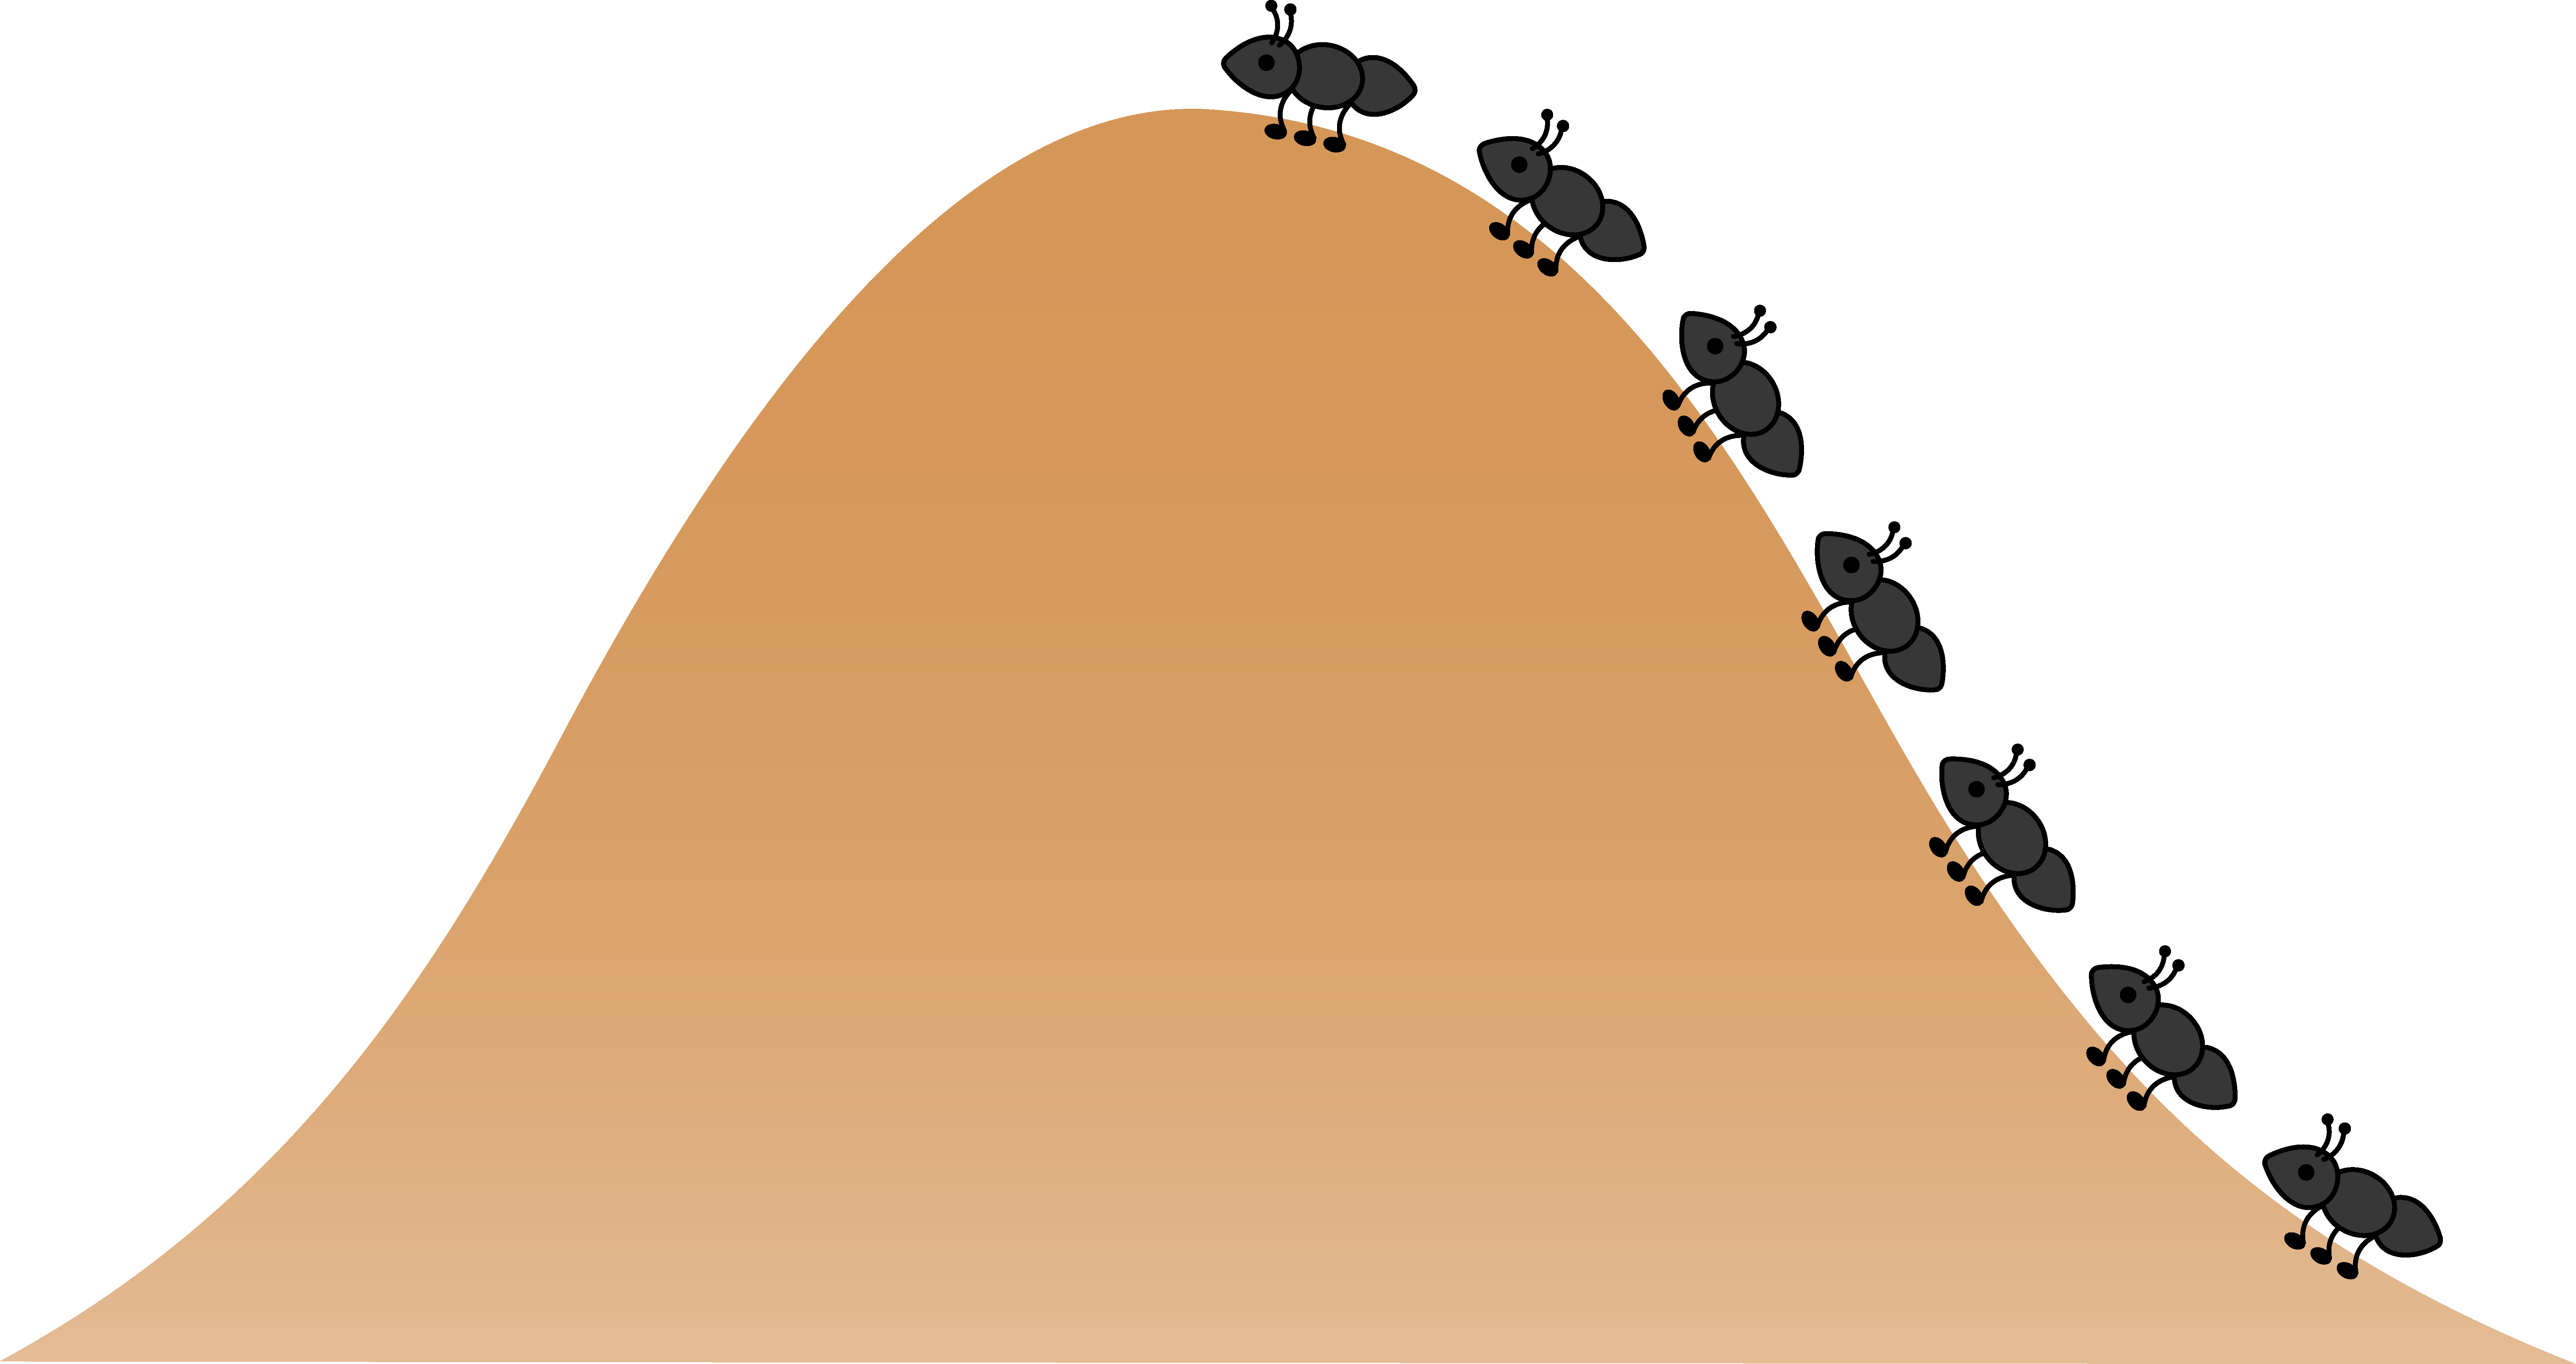 collection of ant. Hills clipart distant